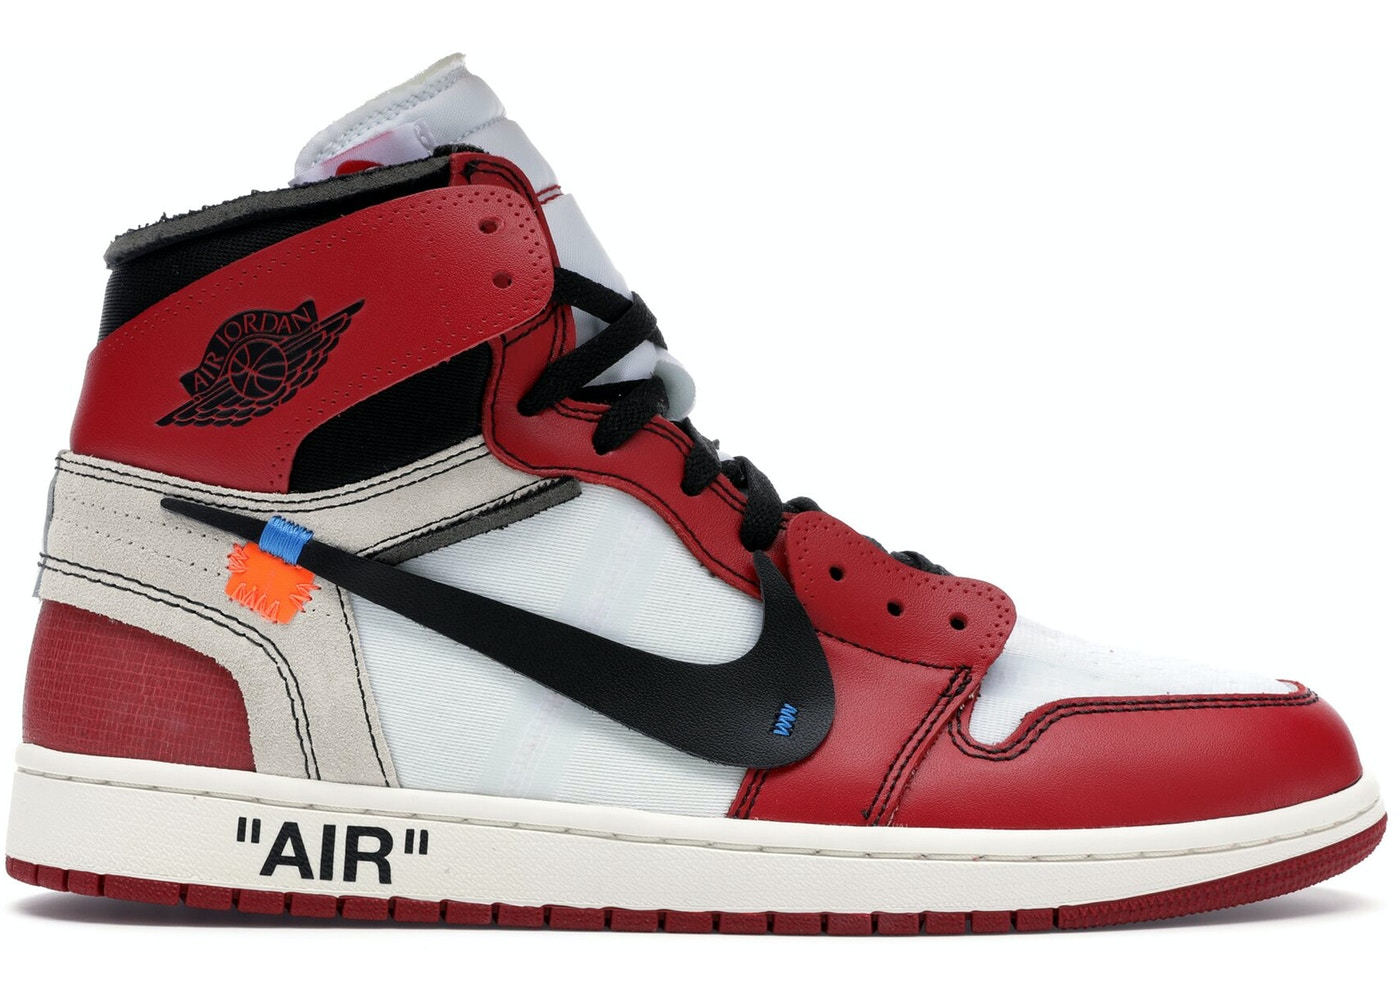 huge discount 0c8c2 d71f7 Jordan 1 Retro High Off-White Chicago - AA3834-101